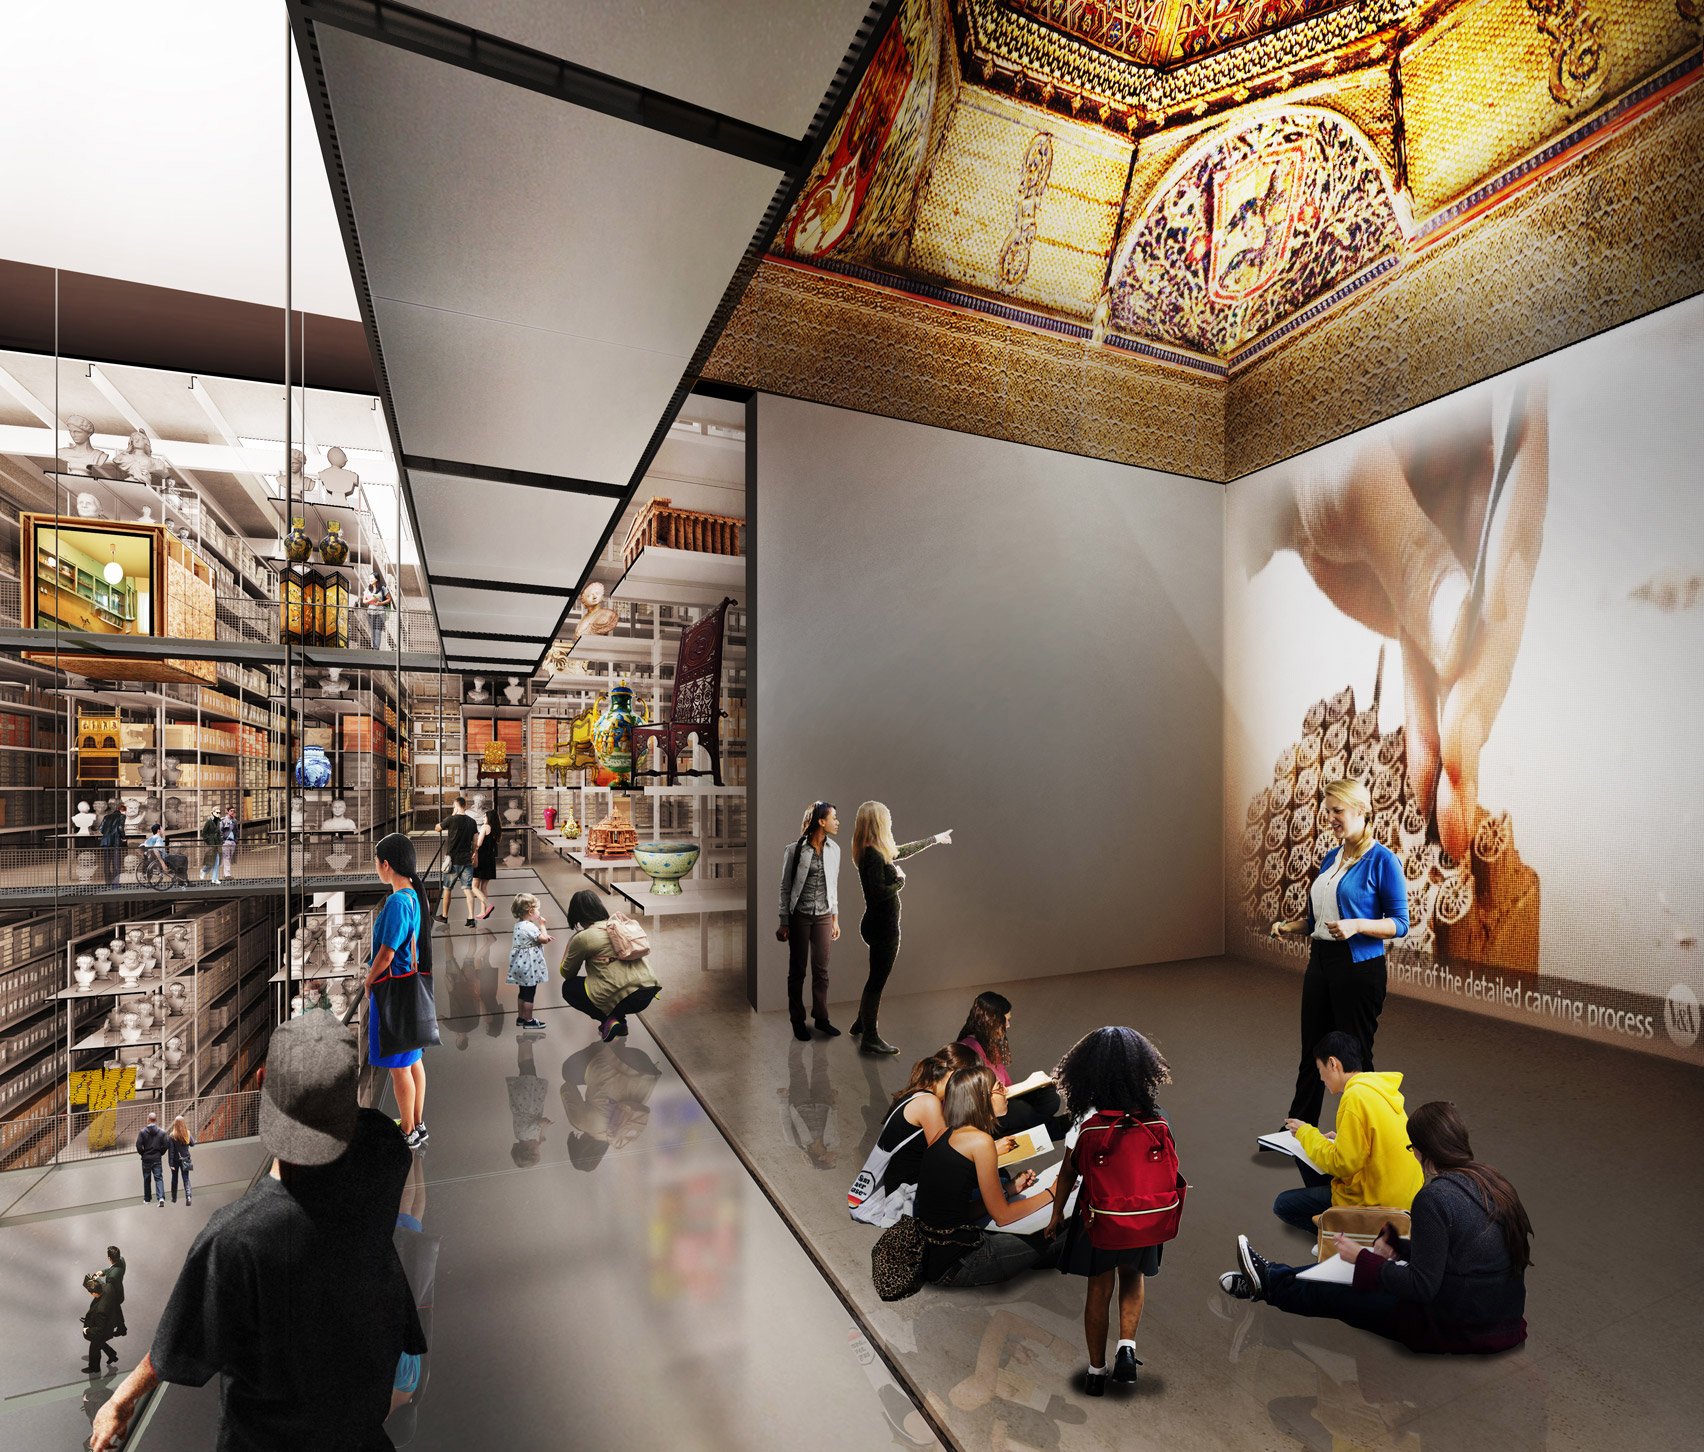 V&A East collection centre by Diller Scofidio + Renfro